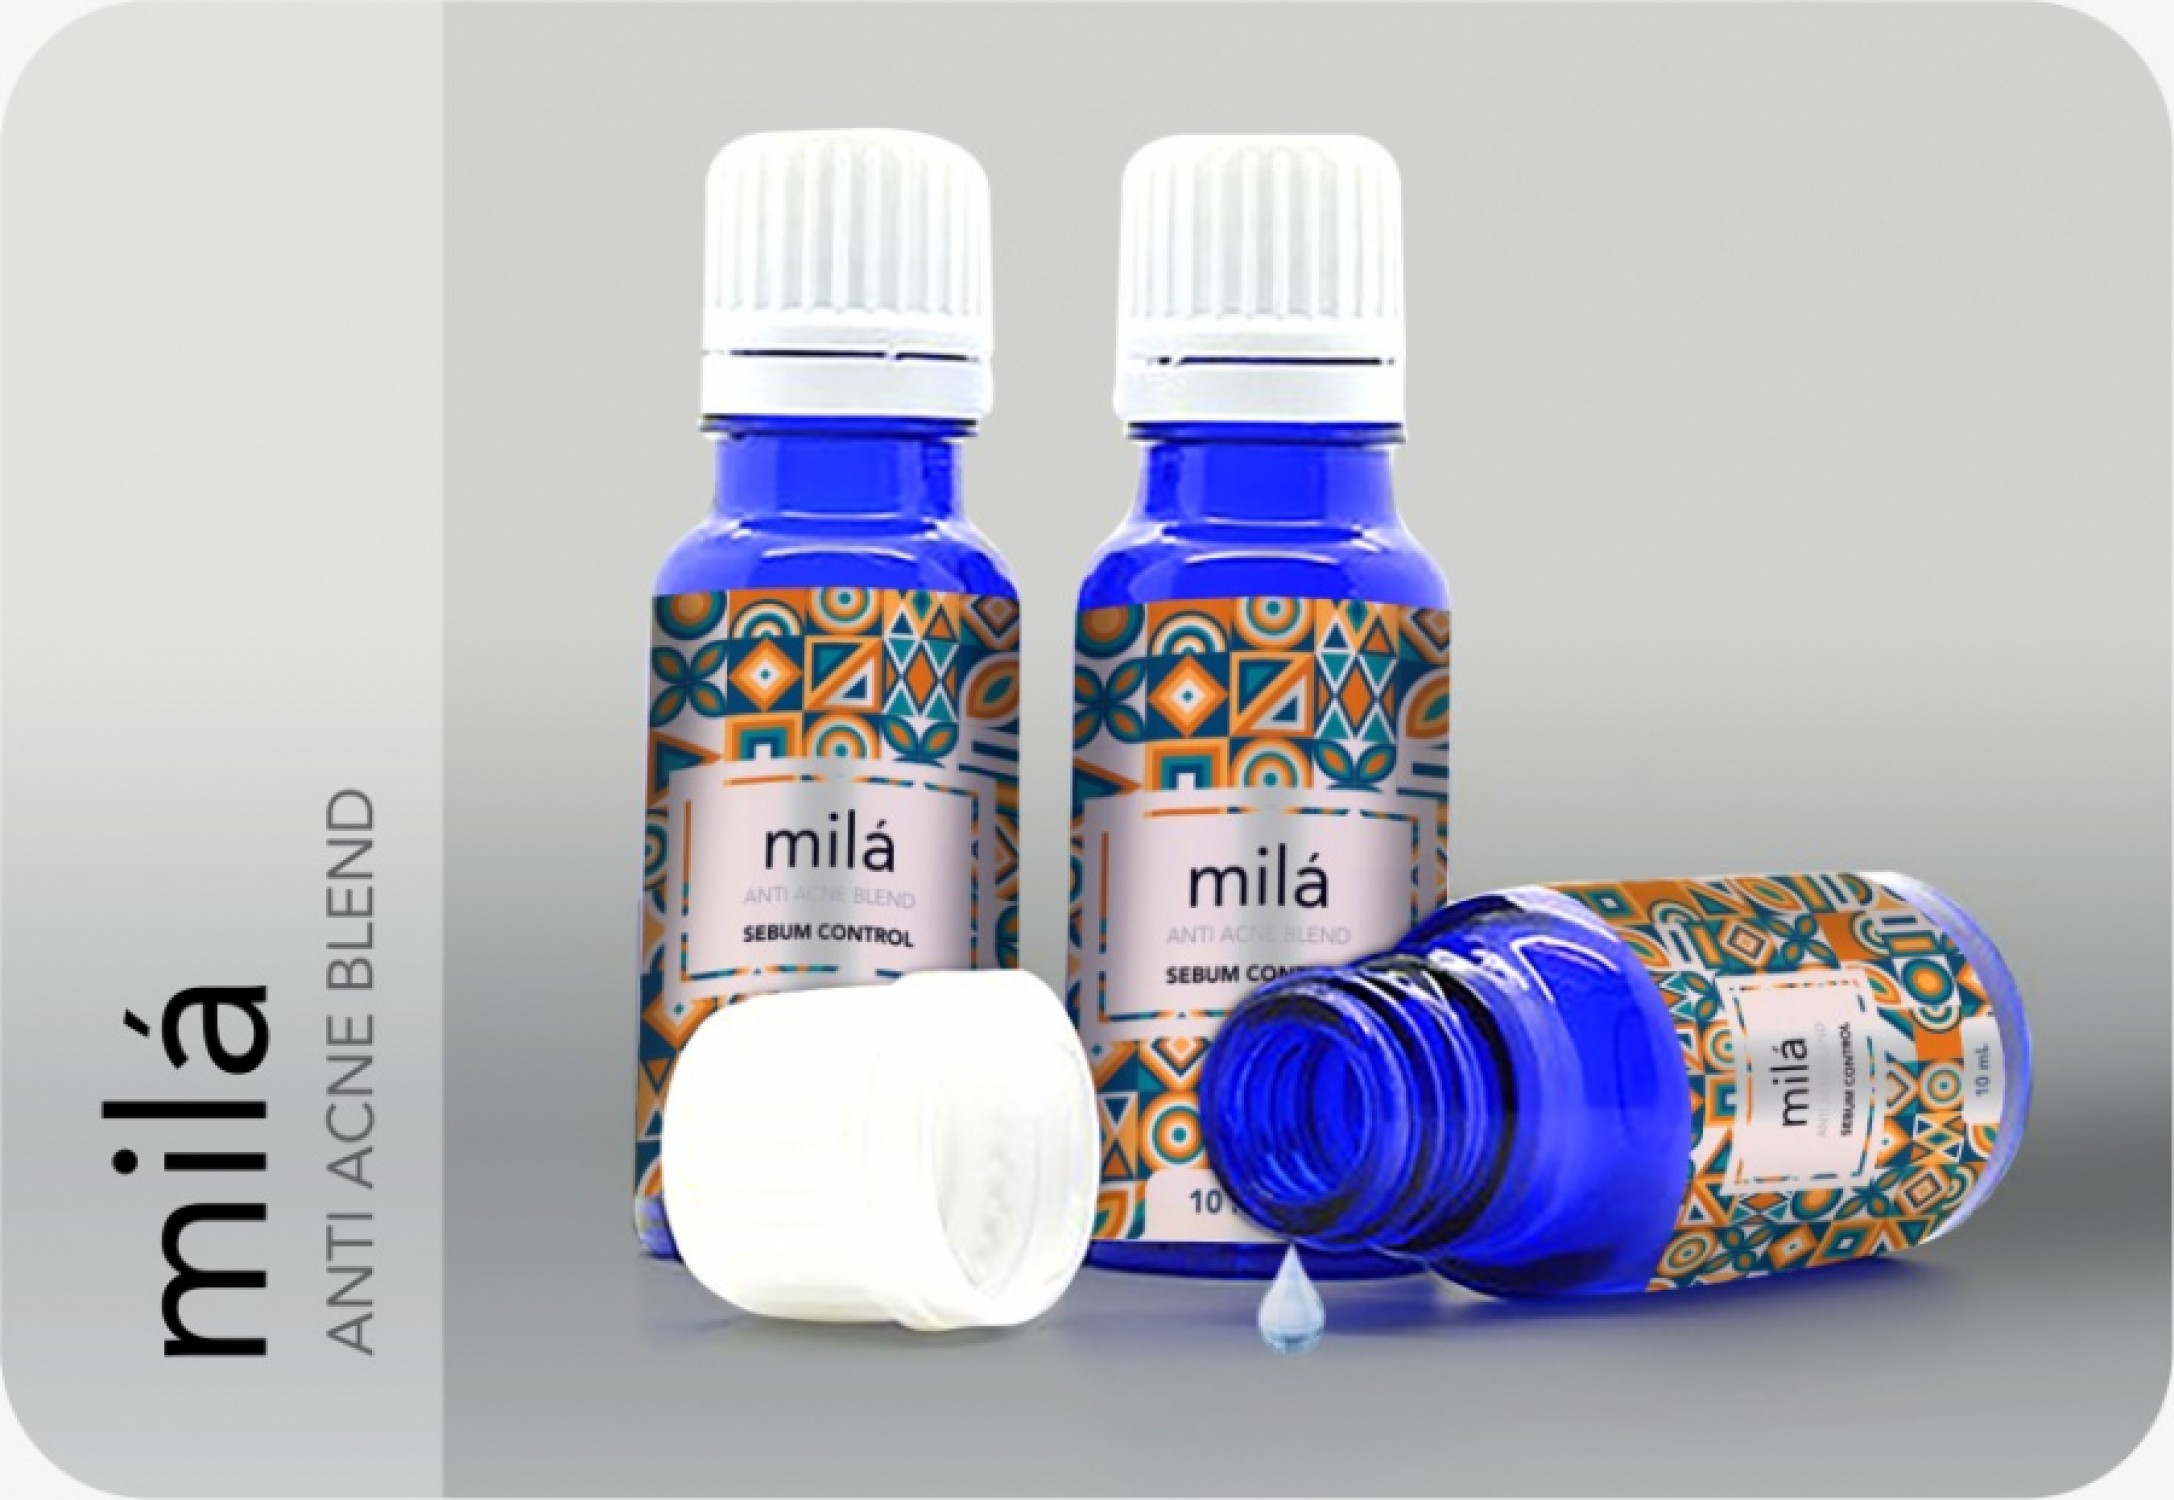 1599652905-h-1500-Mila anti acne blend.jpeg